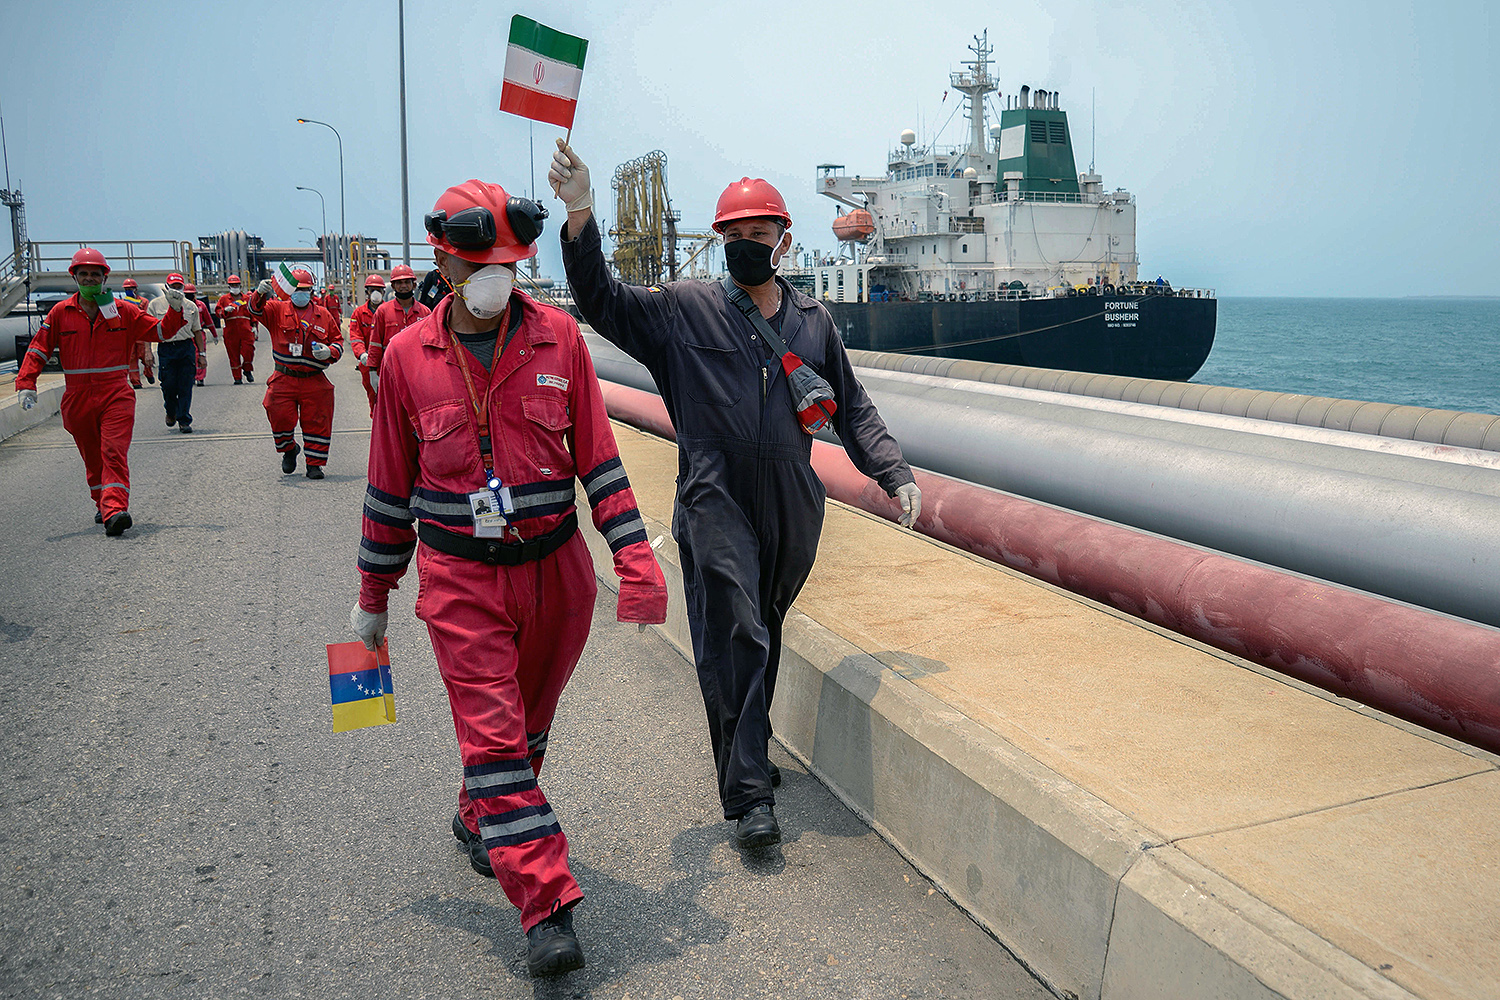 A Venezuelan oil worker waves an Iranian flag.